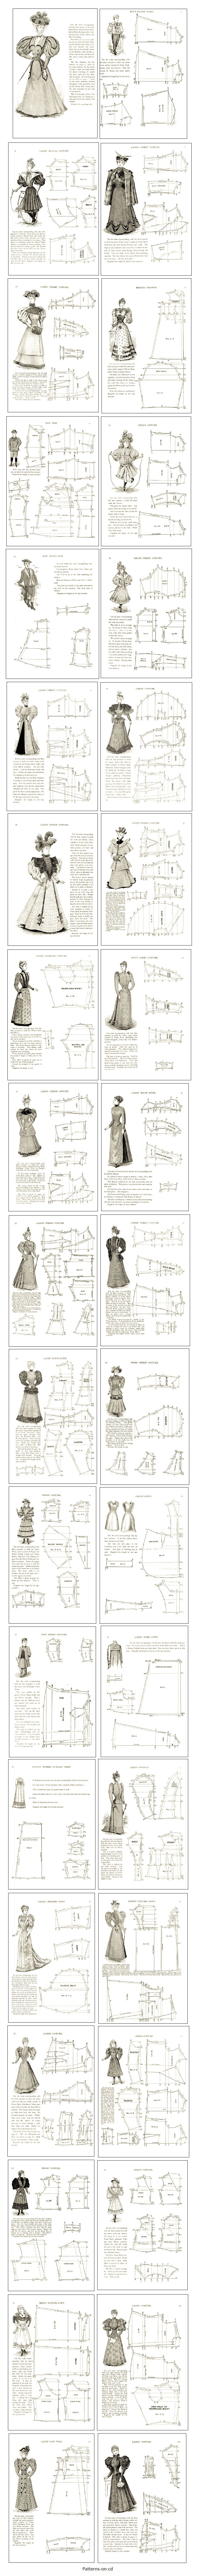 80 Victorian Period Costume Patterns Cutting Dress Making Guide on ...